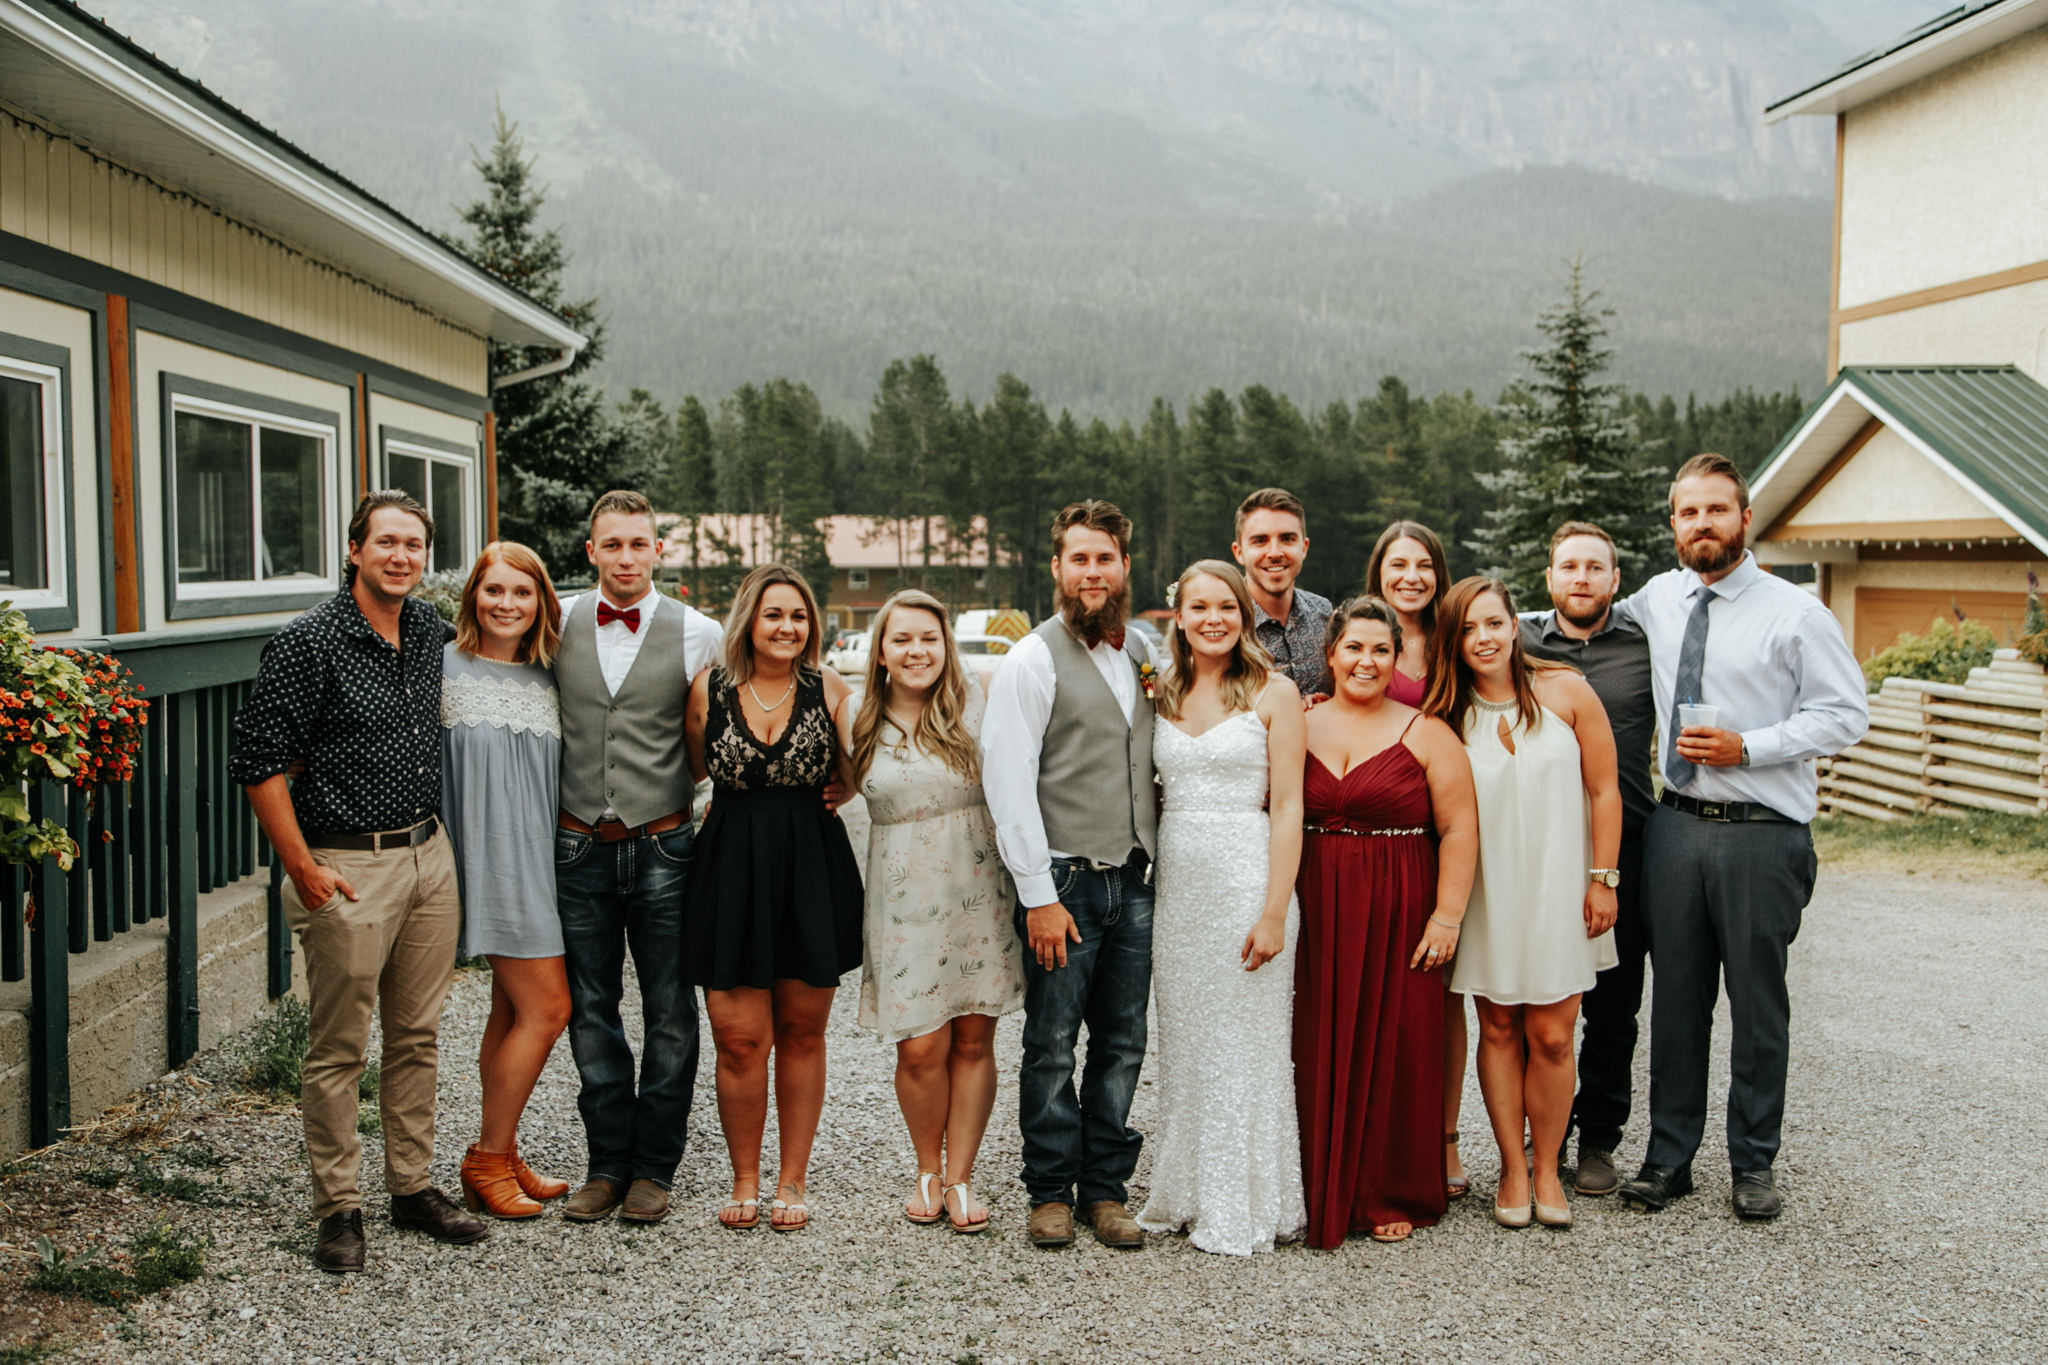 castle-mountain-wedding-photographer-love-and-be-loved-photography-lethbridge-pincher-creek-crowsnest-pass-yannick-rylee-photo-image-picture-155186.jpg